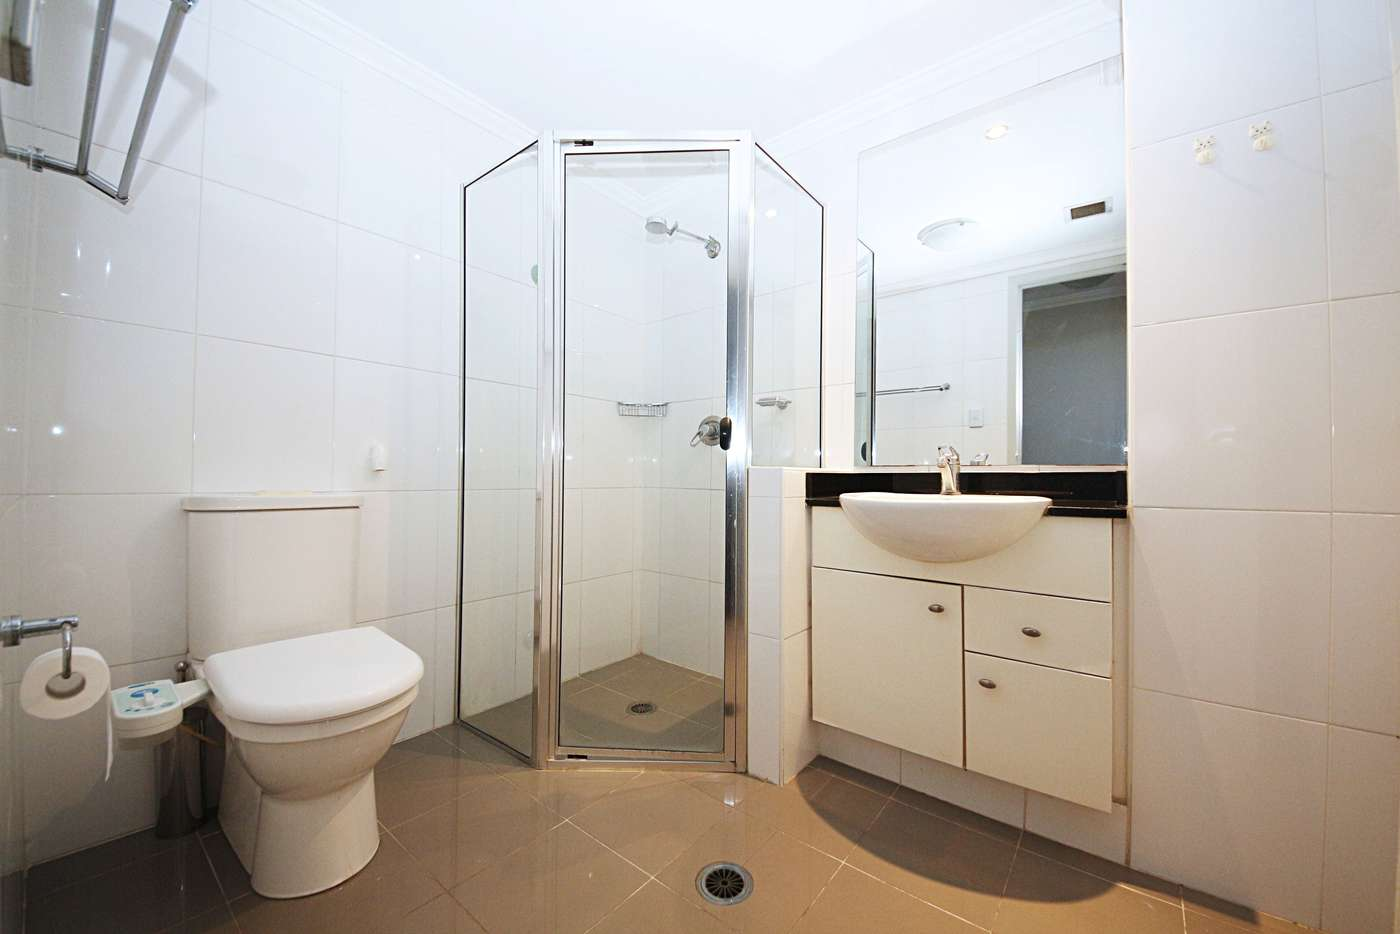 Sixth view of Homely apartment listing, 135/1 Brown Street, Ashfield NSW 2131